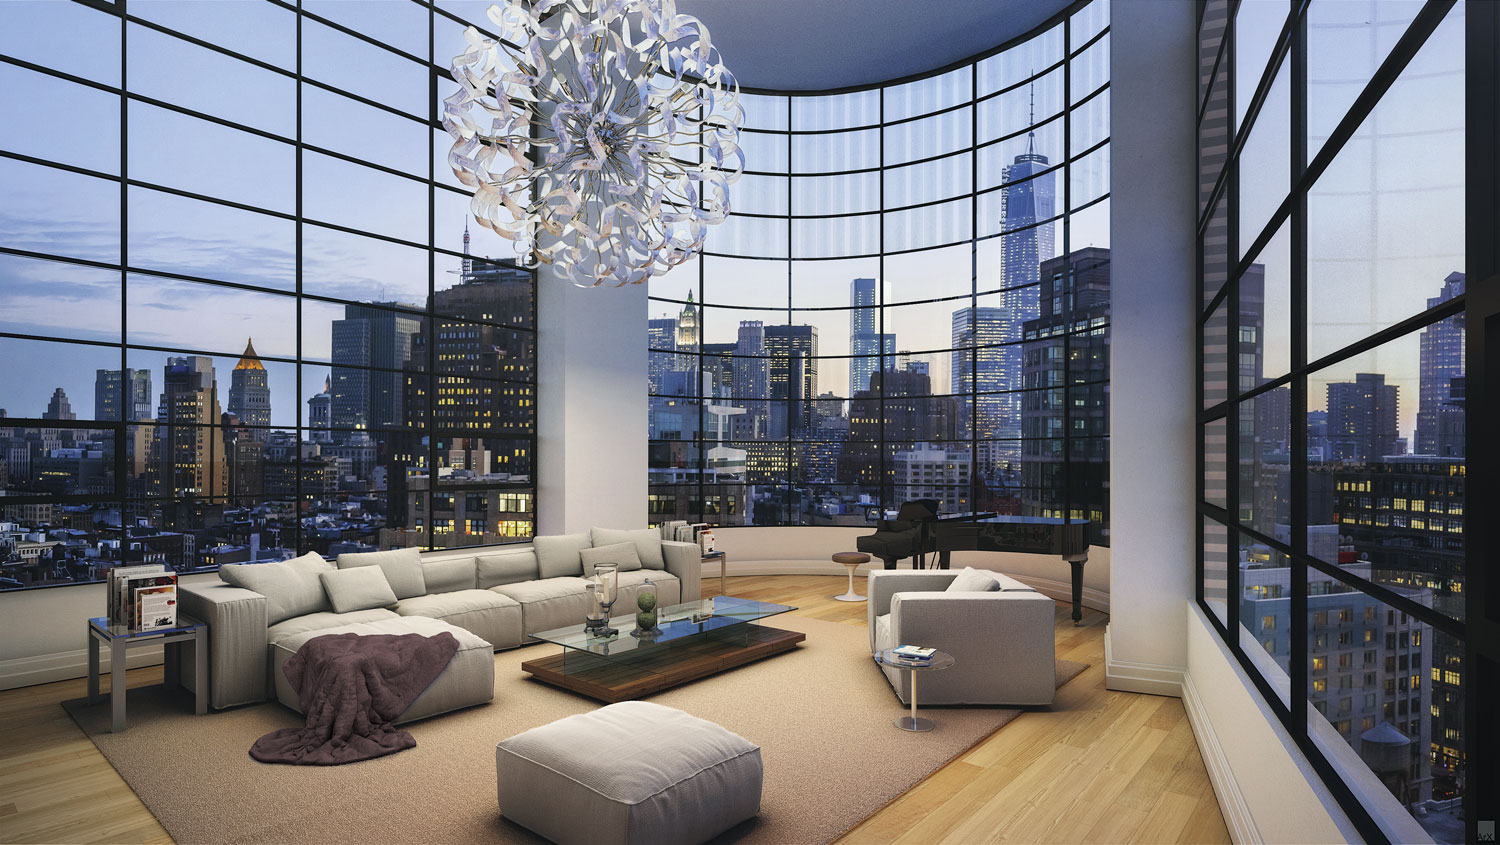 7 Dreamy New York Mansion for Sale